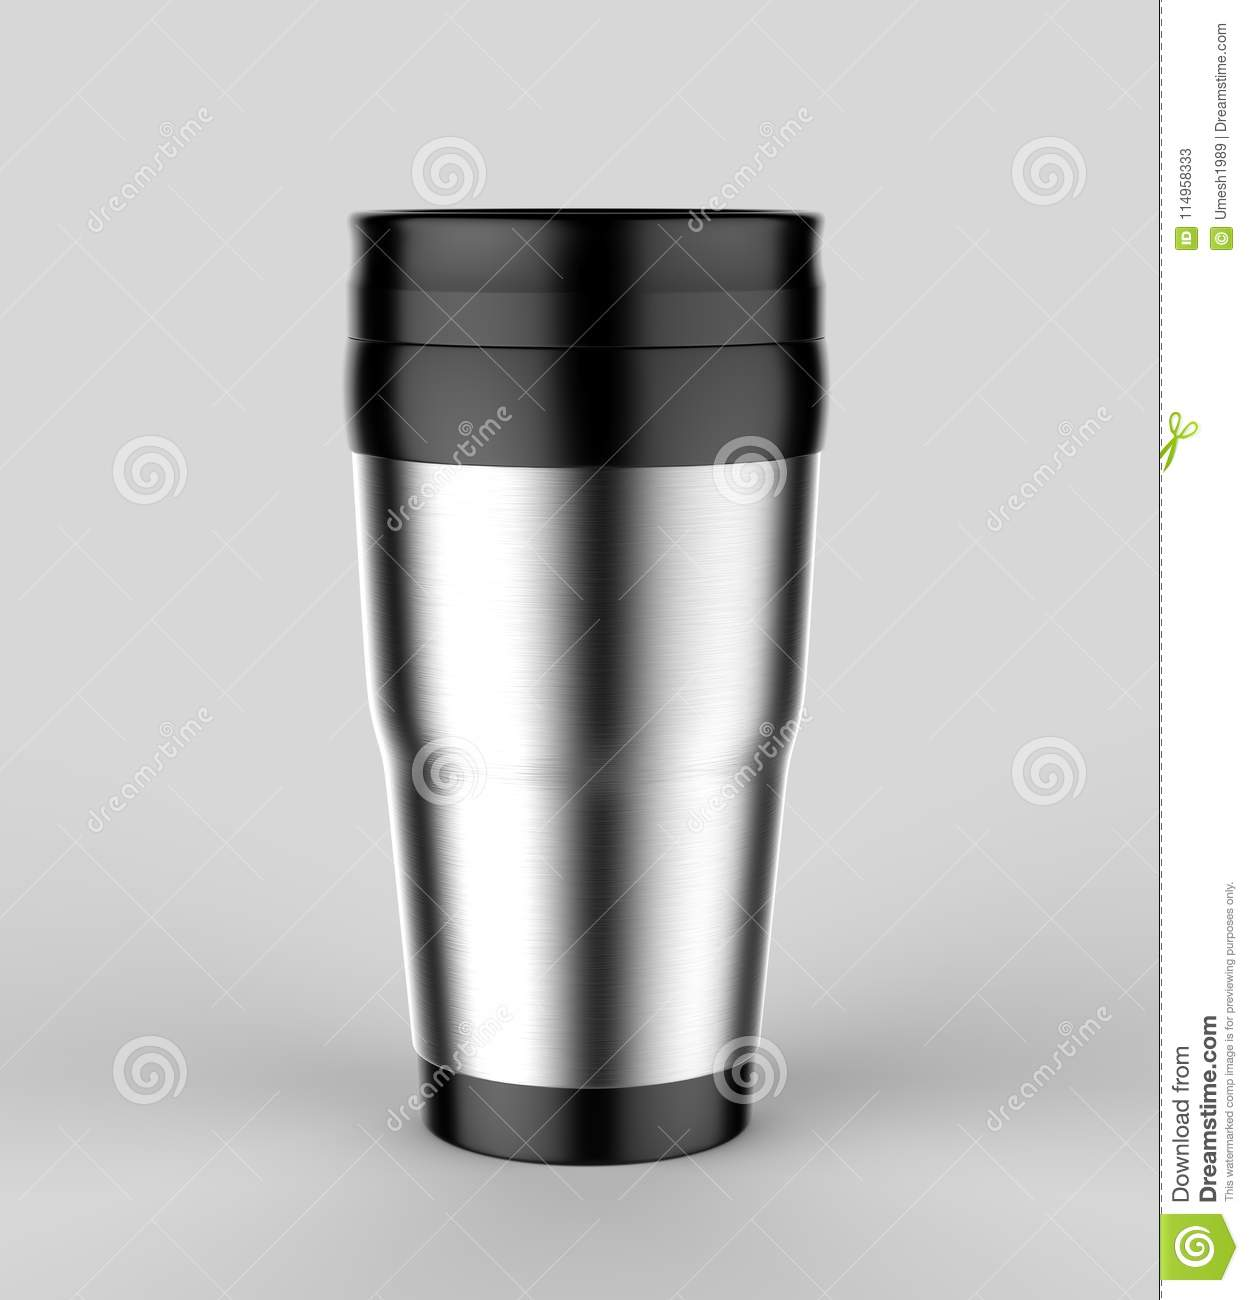 Blank Thermos Travel Tumbler Mug For Design Presentation Or Mock Up Design 3d Render Illustration Stock Illustration Illustration Of Mockup Design 114958333